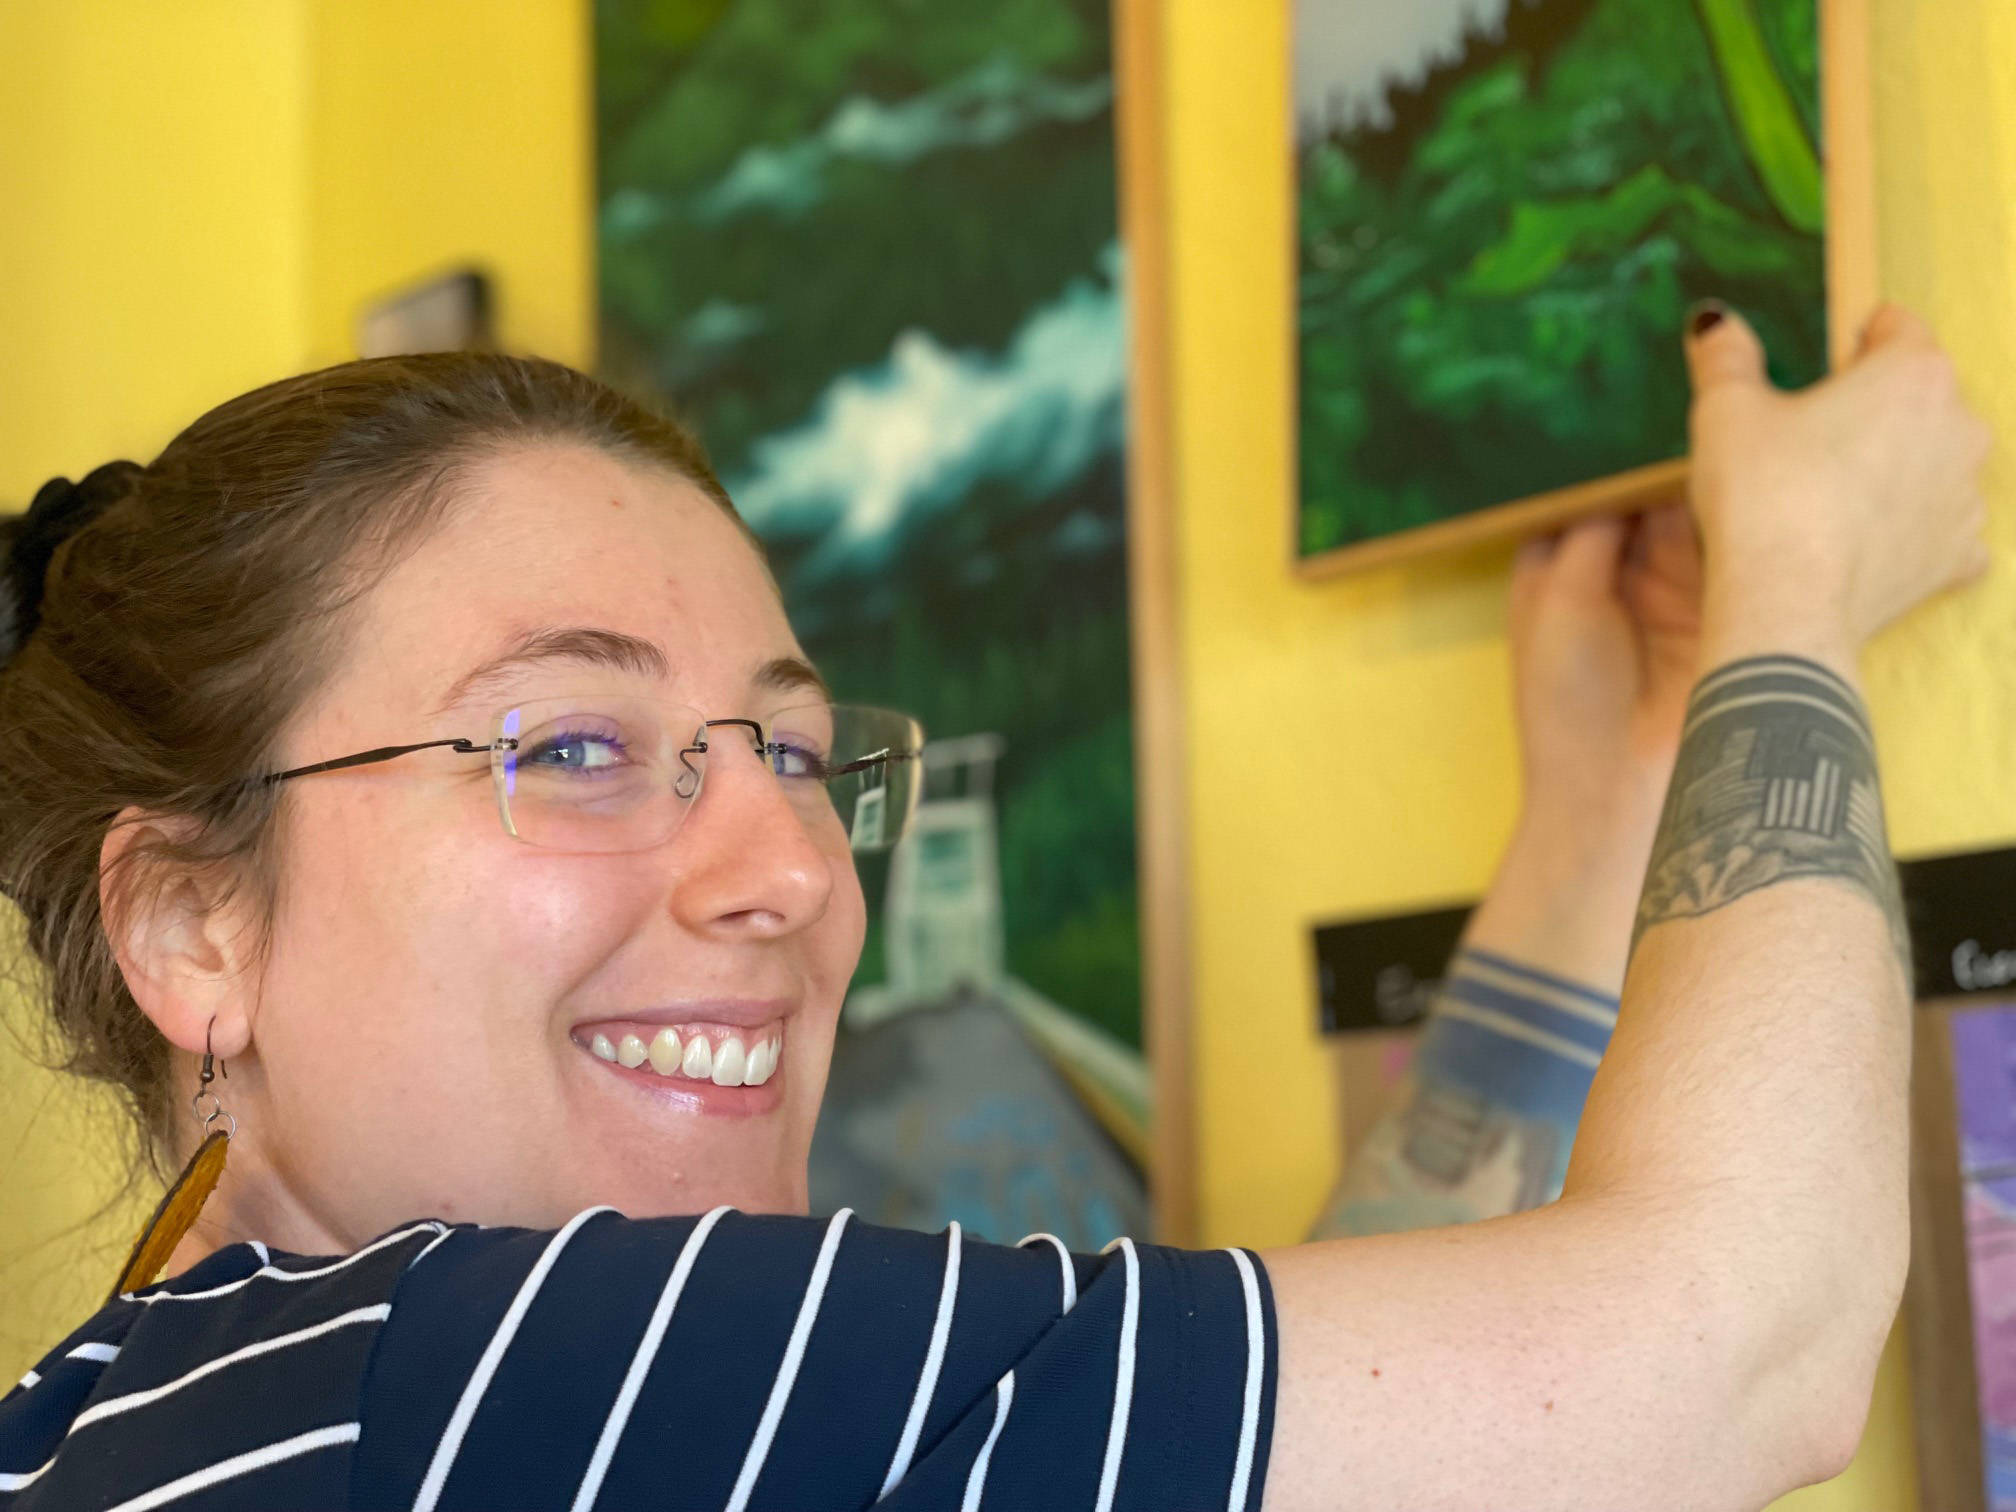 Homer artist Jenna Gerrety straightens paintings currently being shown at Sustainable Wares. (Photo by McKibben Jackinsky)